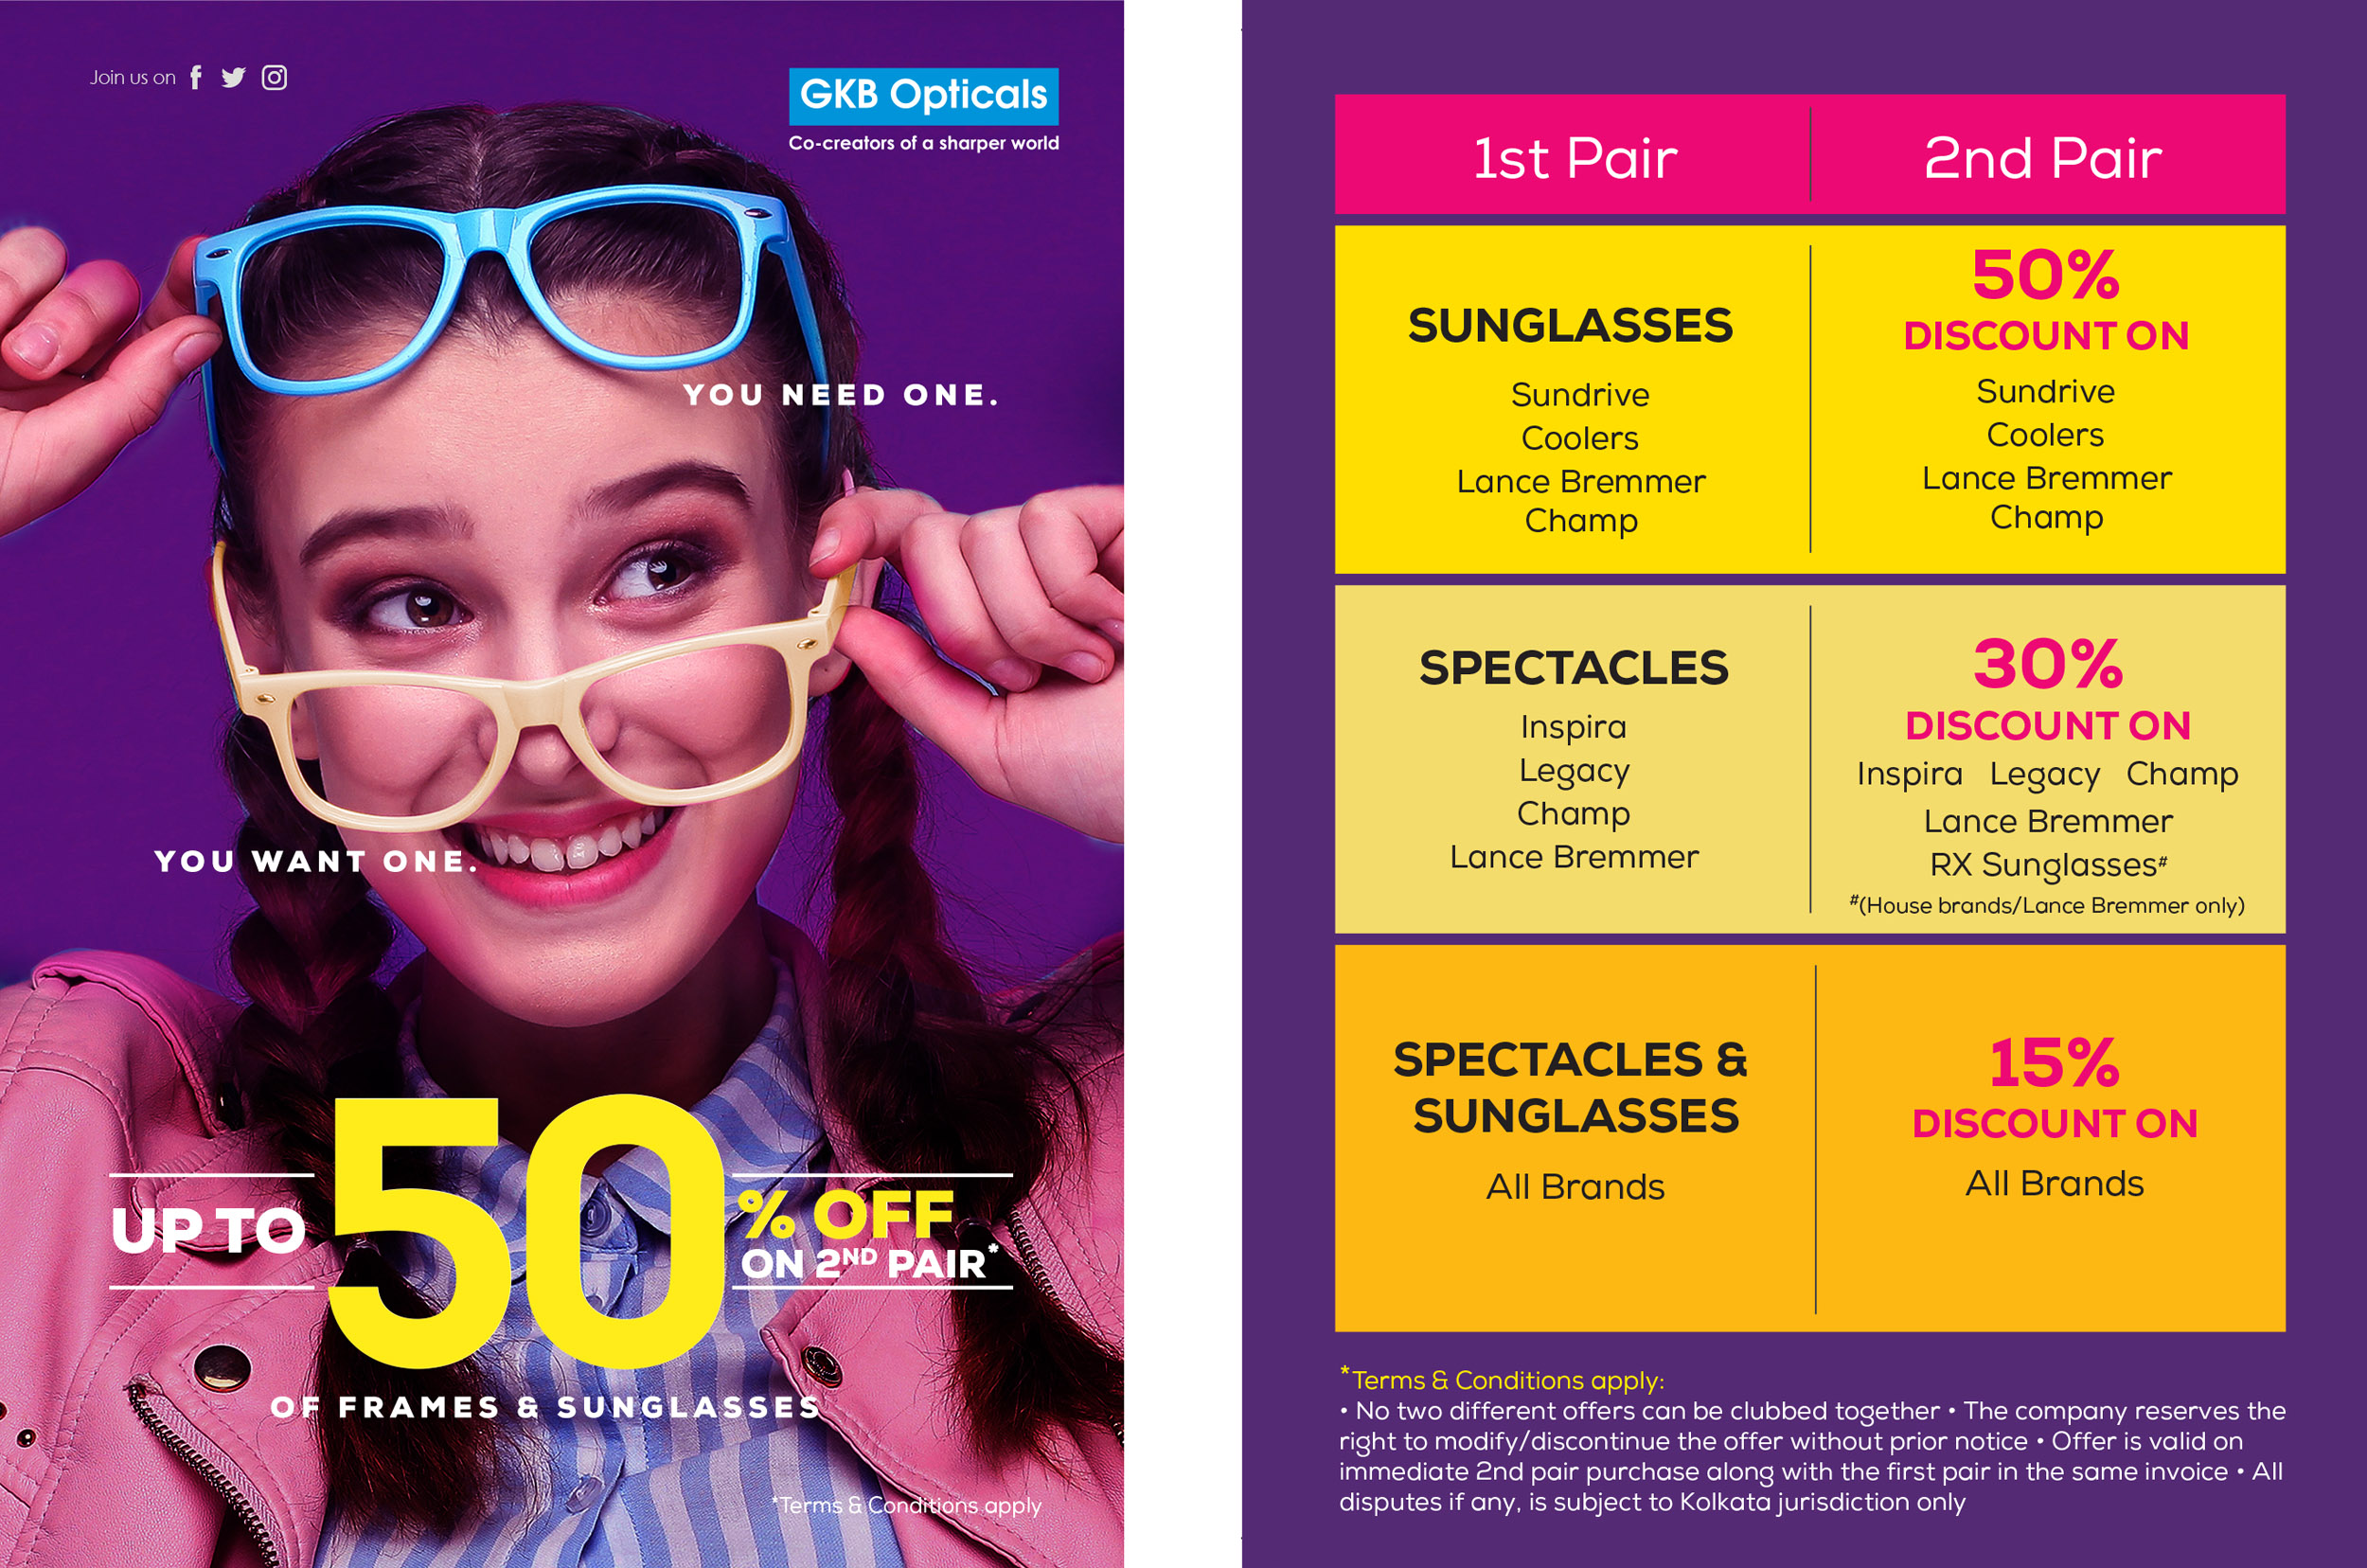 Upto 50% Off on 2nd pair